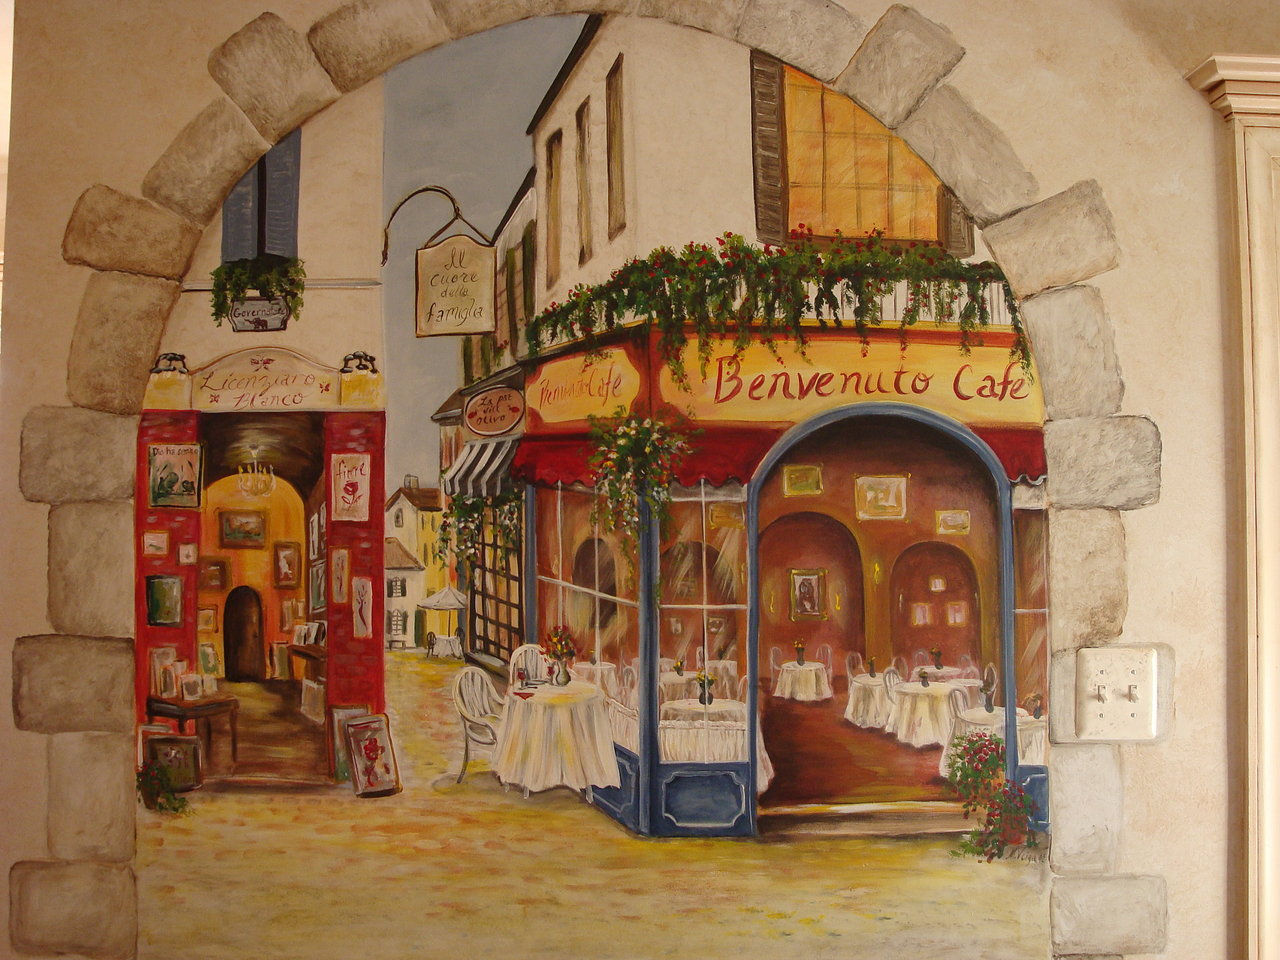 French wall murals image collections home wall decoration ideas french wall murals choice image home wall decoration ideas french wall murals choice image home wall decoration ideas french wall murals image collections amipublicfo Image collections